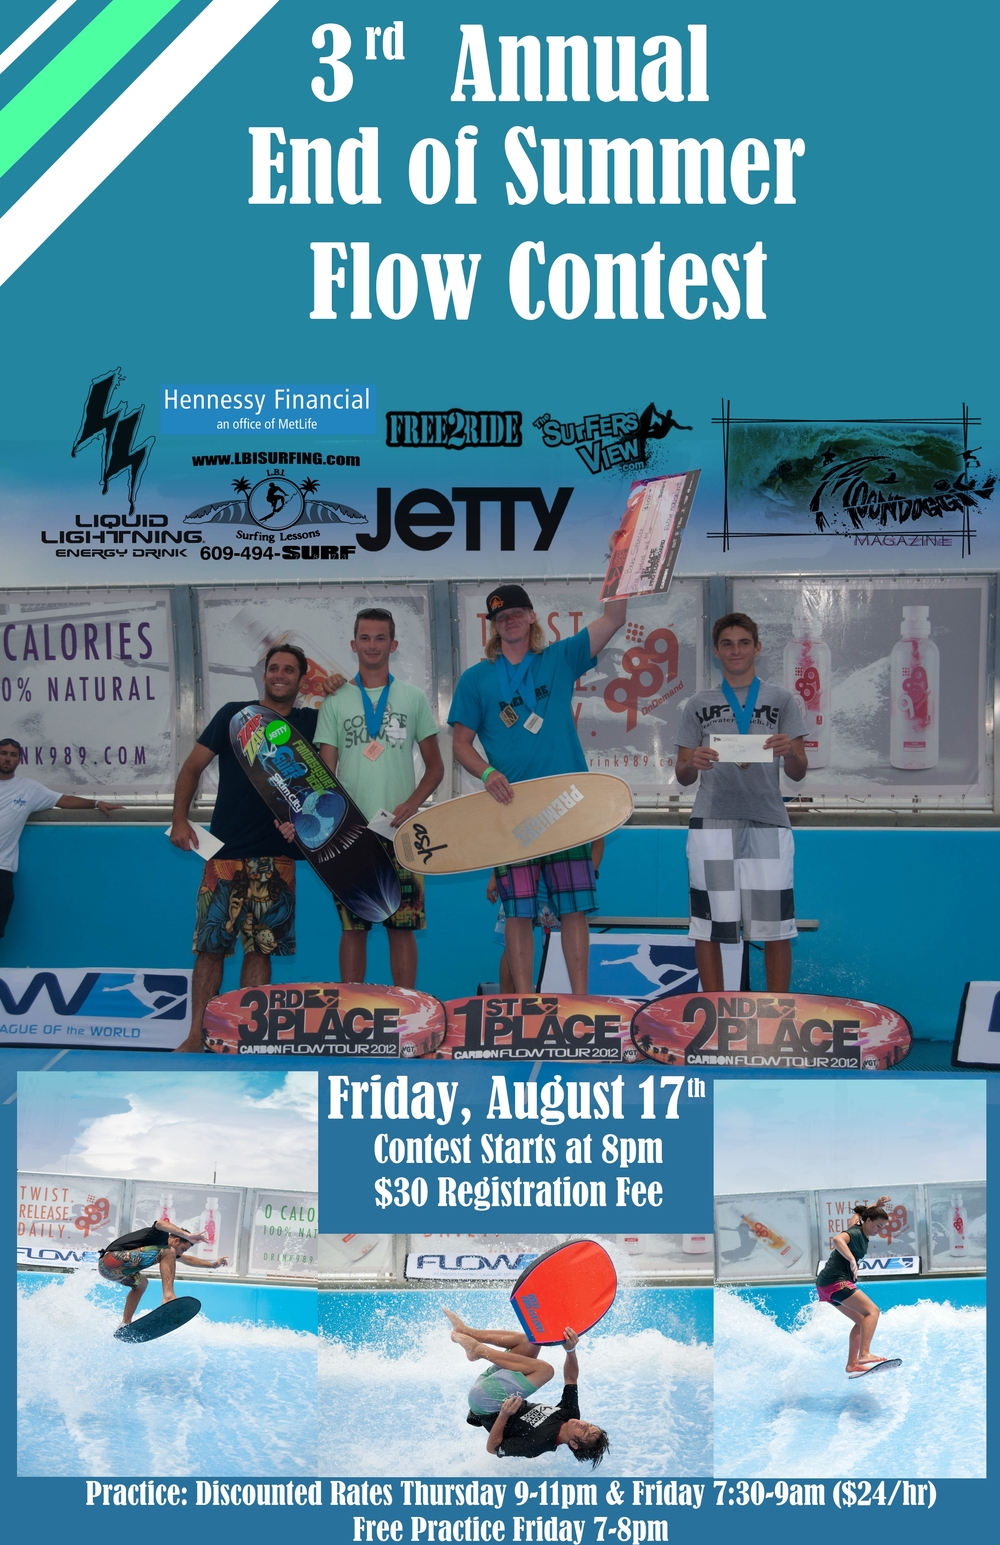 3rd Annual End of Summer Flow Contest